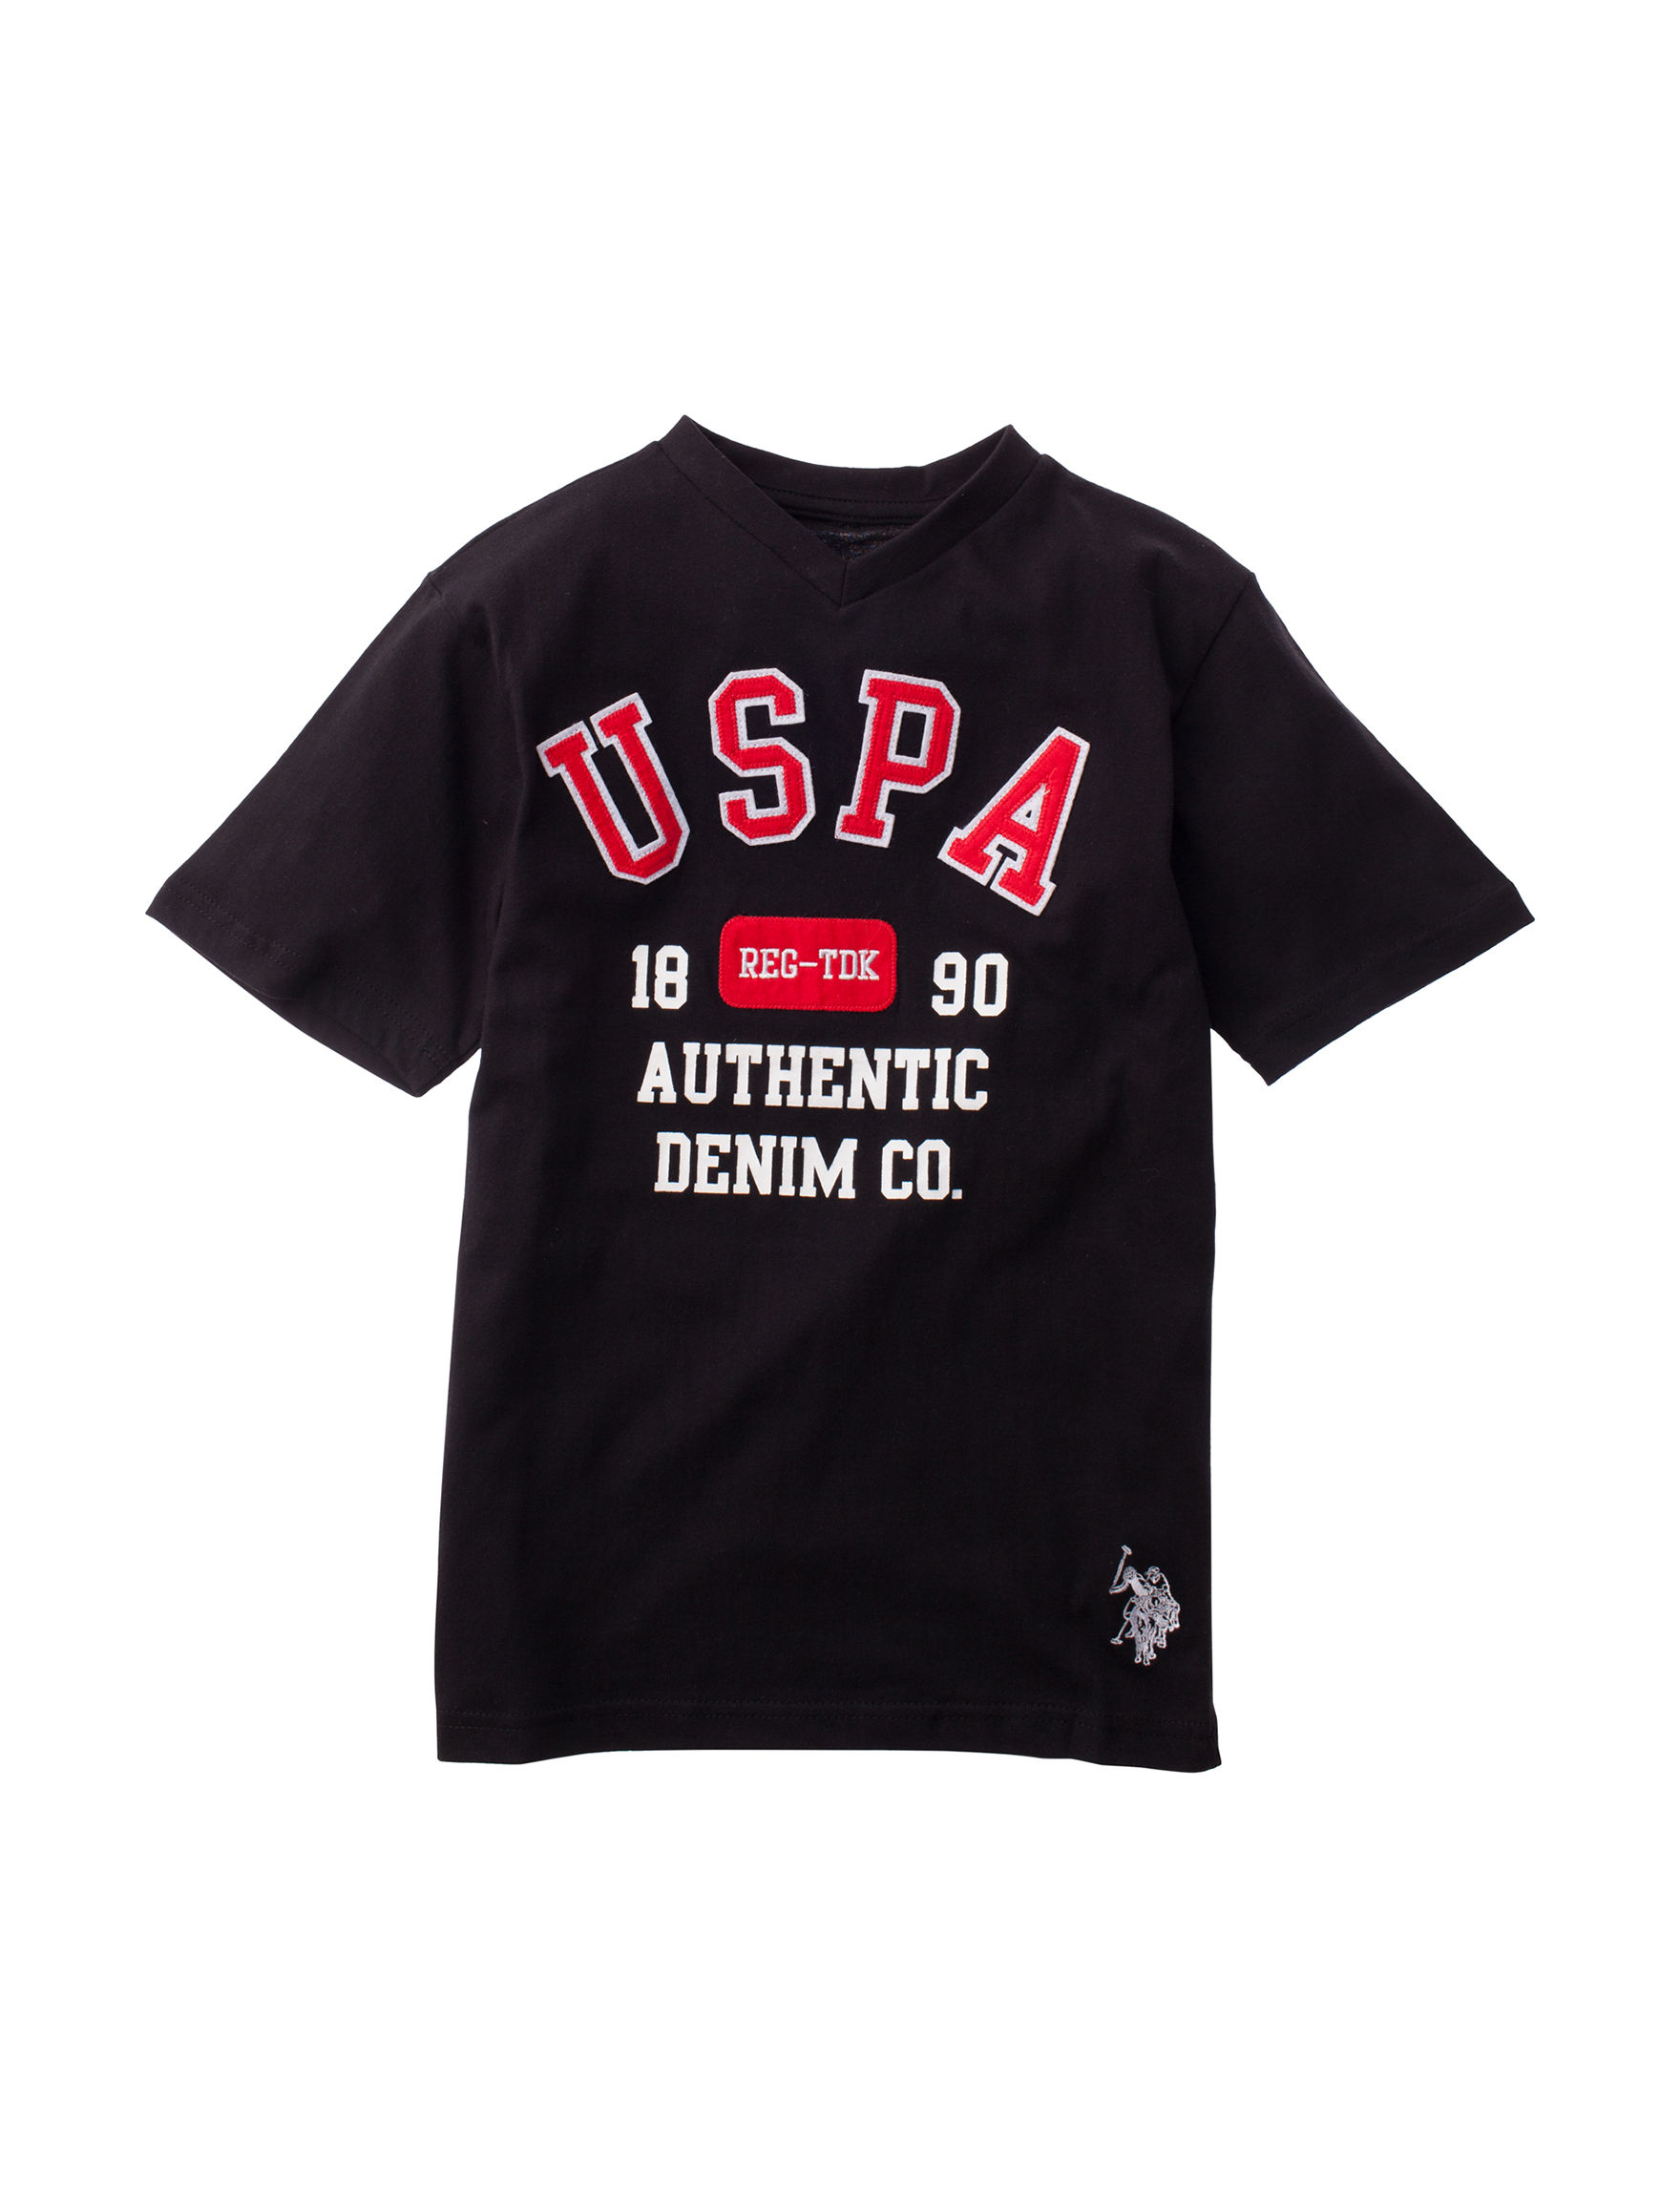 U.S. Polo Assn. Black Tees & Tanks